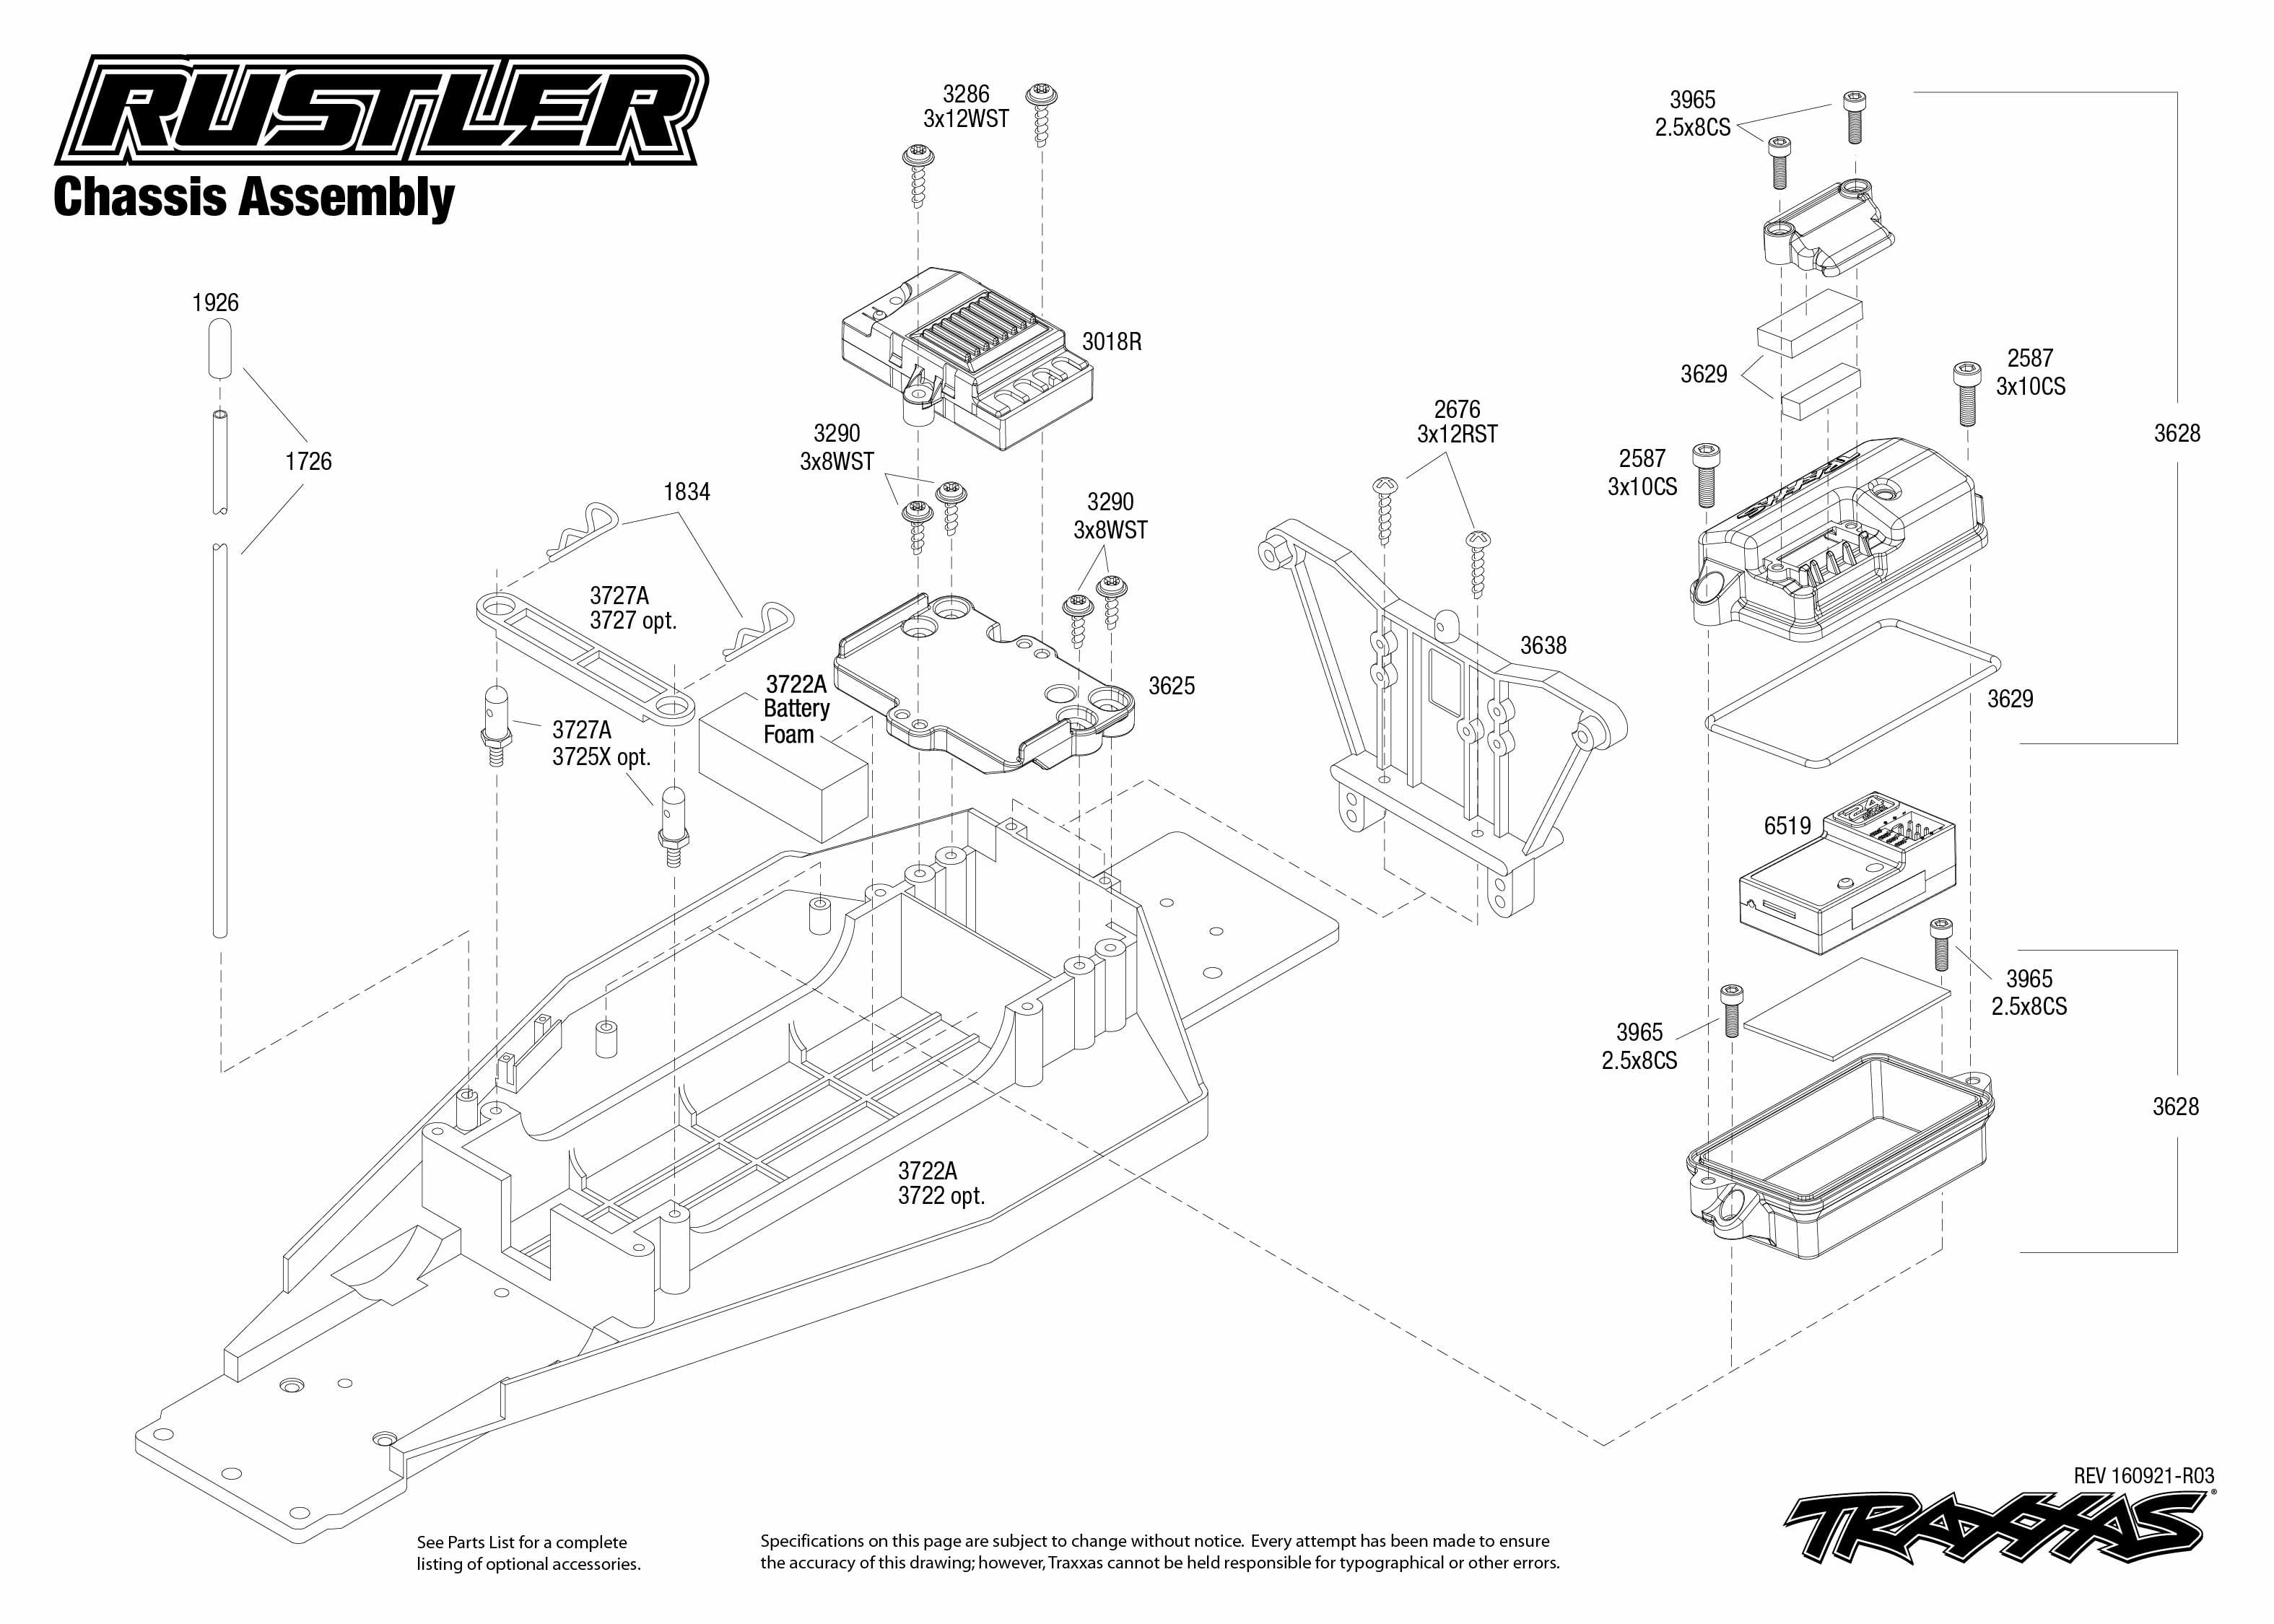 Rustler 1 Chassis Assembly Exploded View